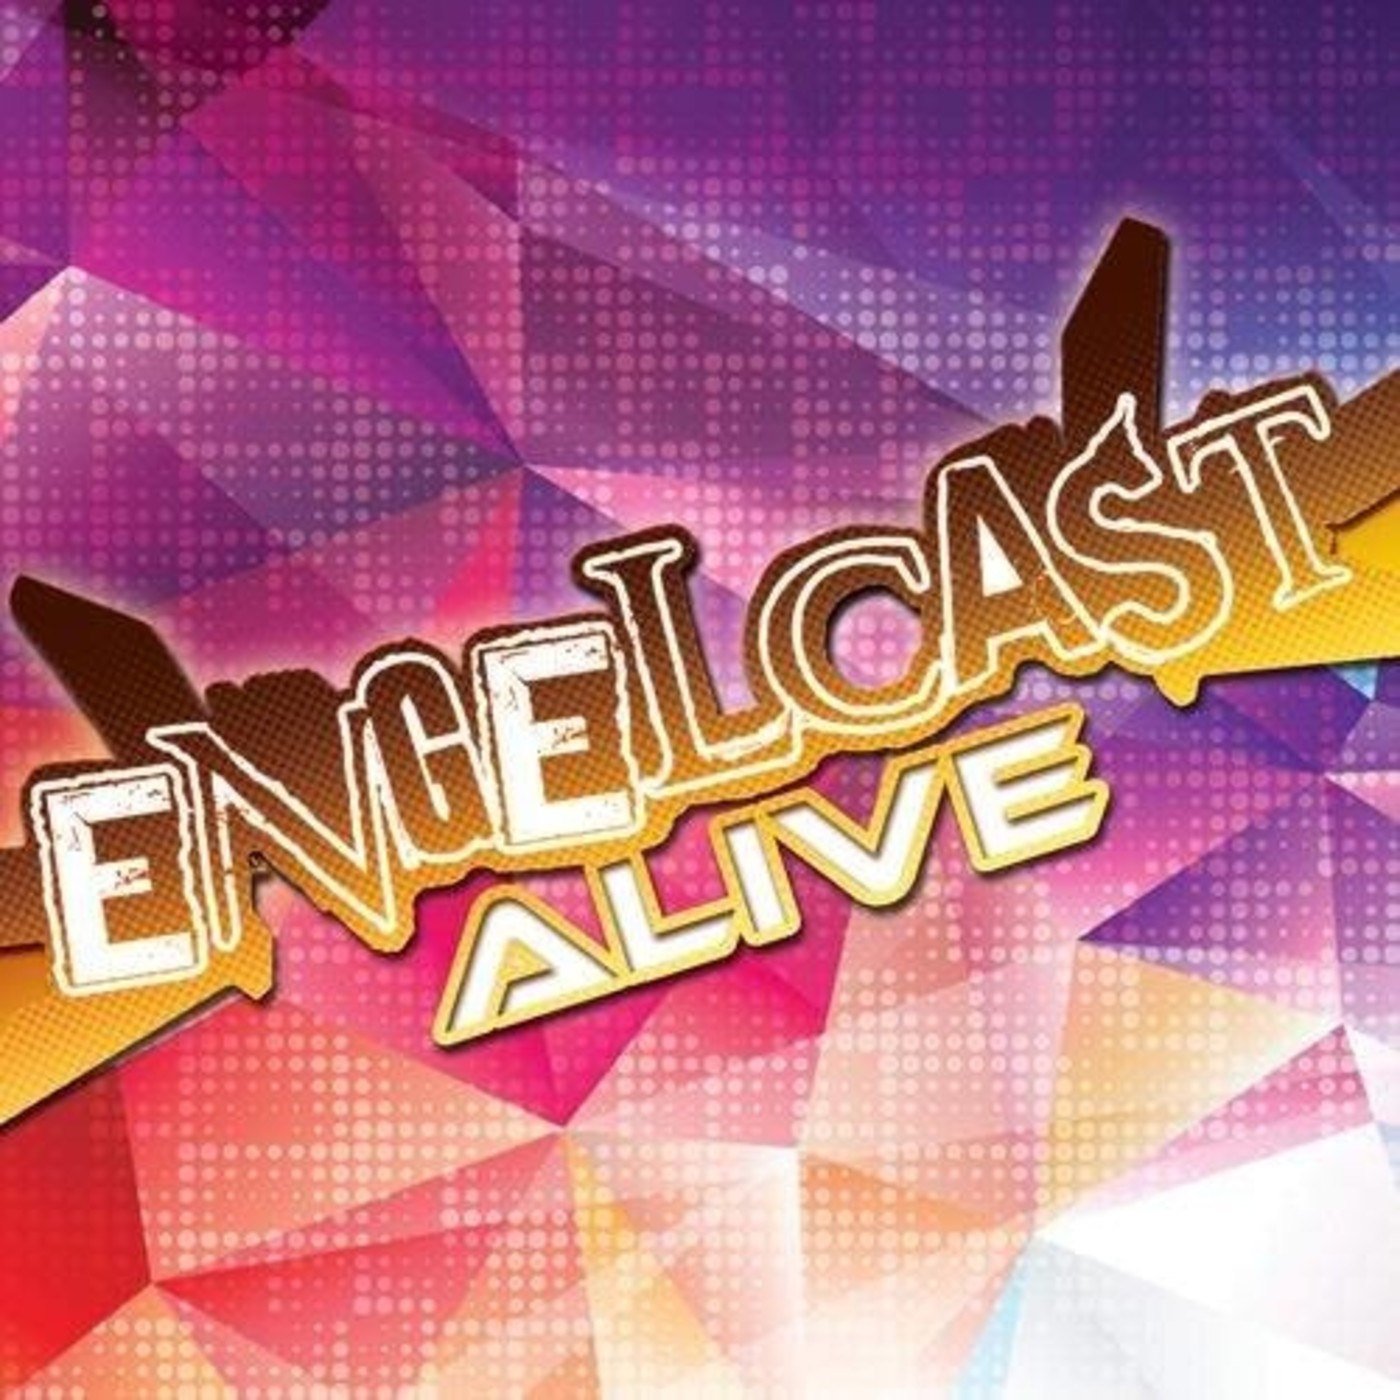 EngelCast Alive!